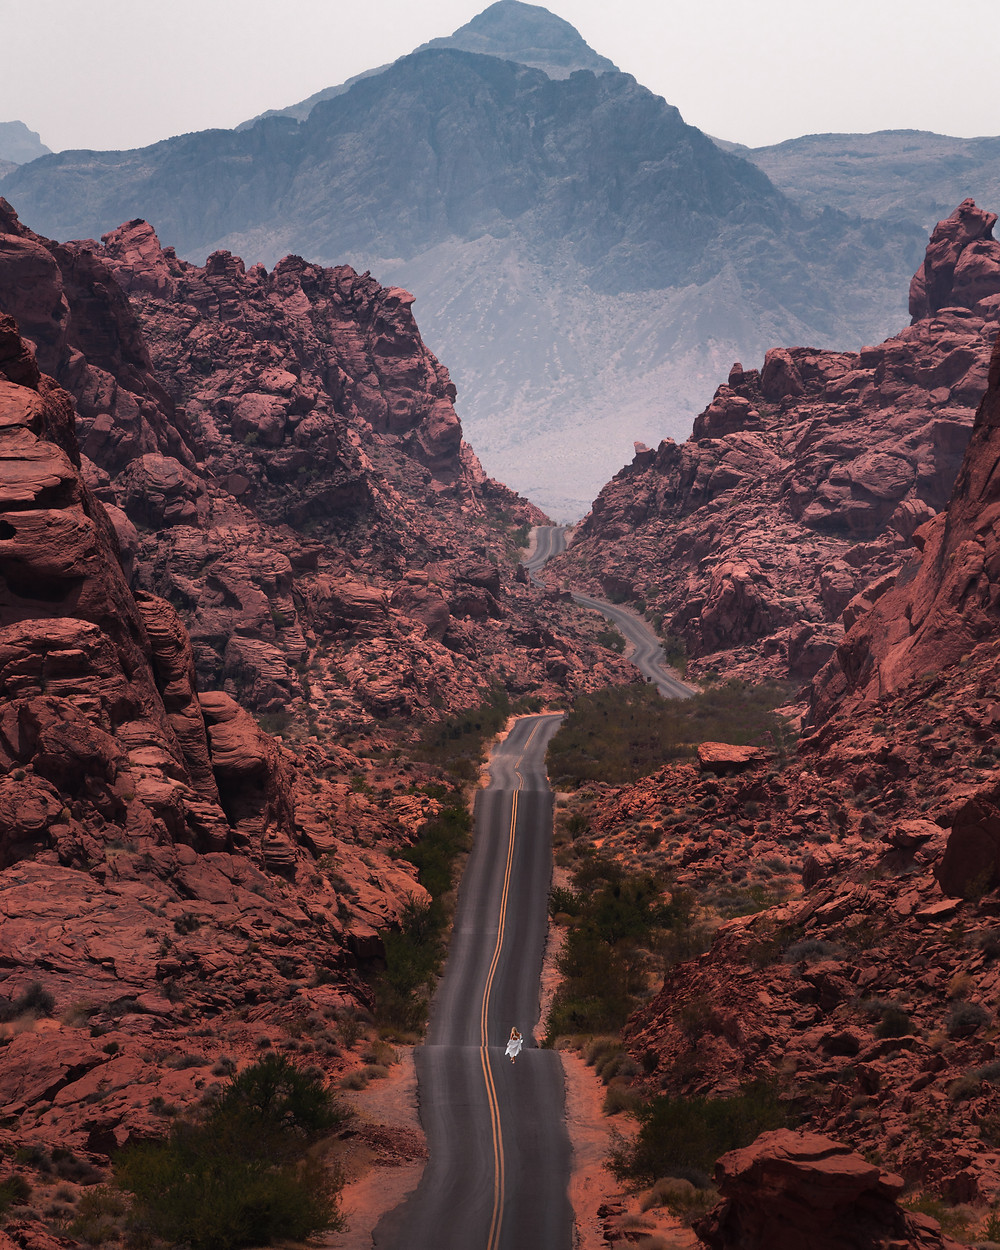 iconic road through the rocky desert mountains of the valley of fire